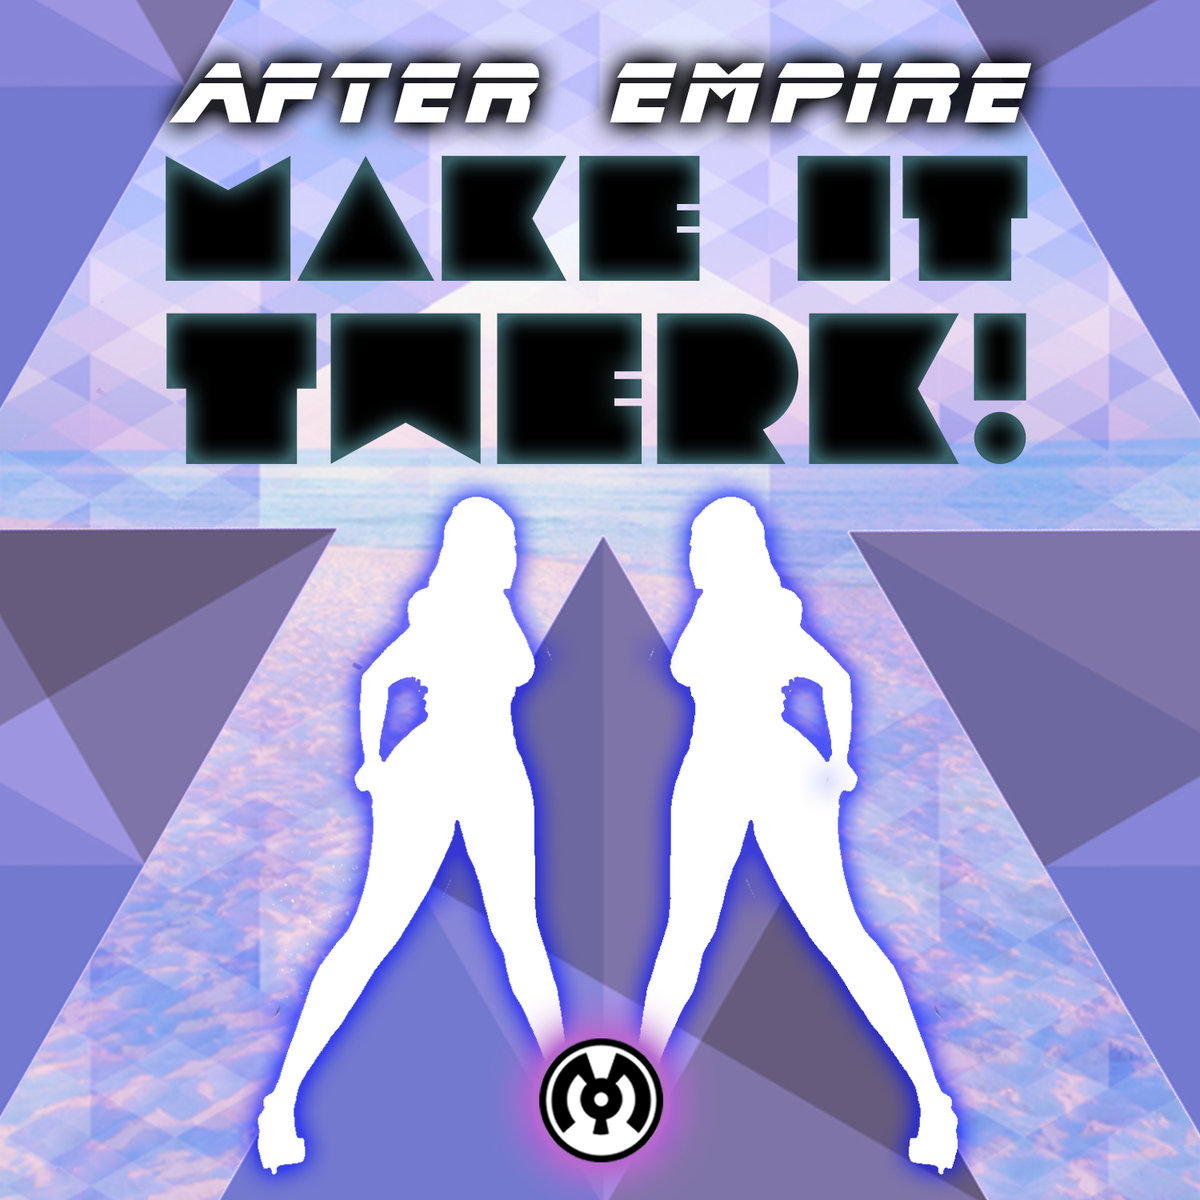 After Empire - Make It Twerk @ 'Make It Twerk' album (electronic, dubstep)